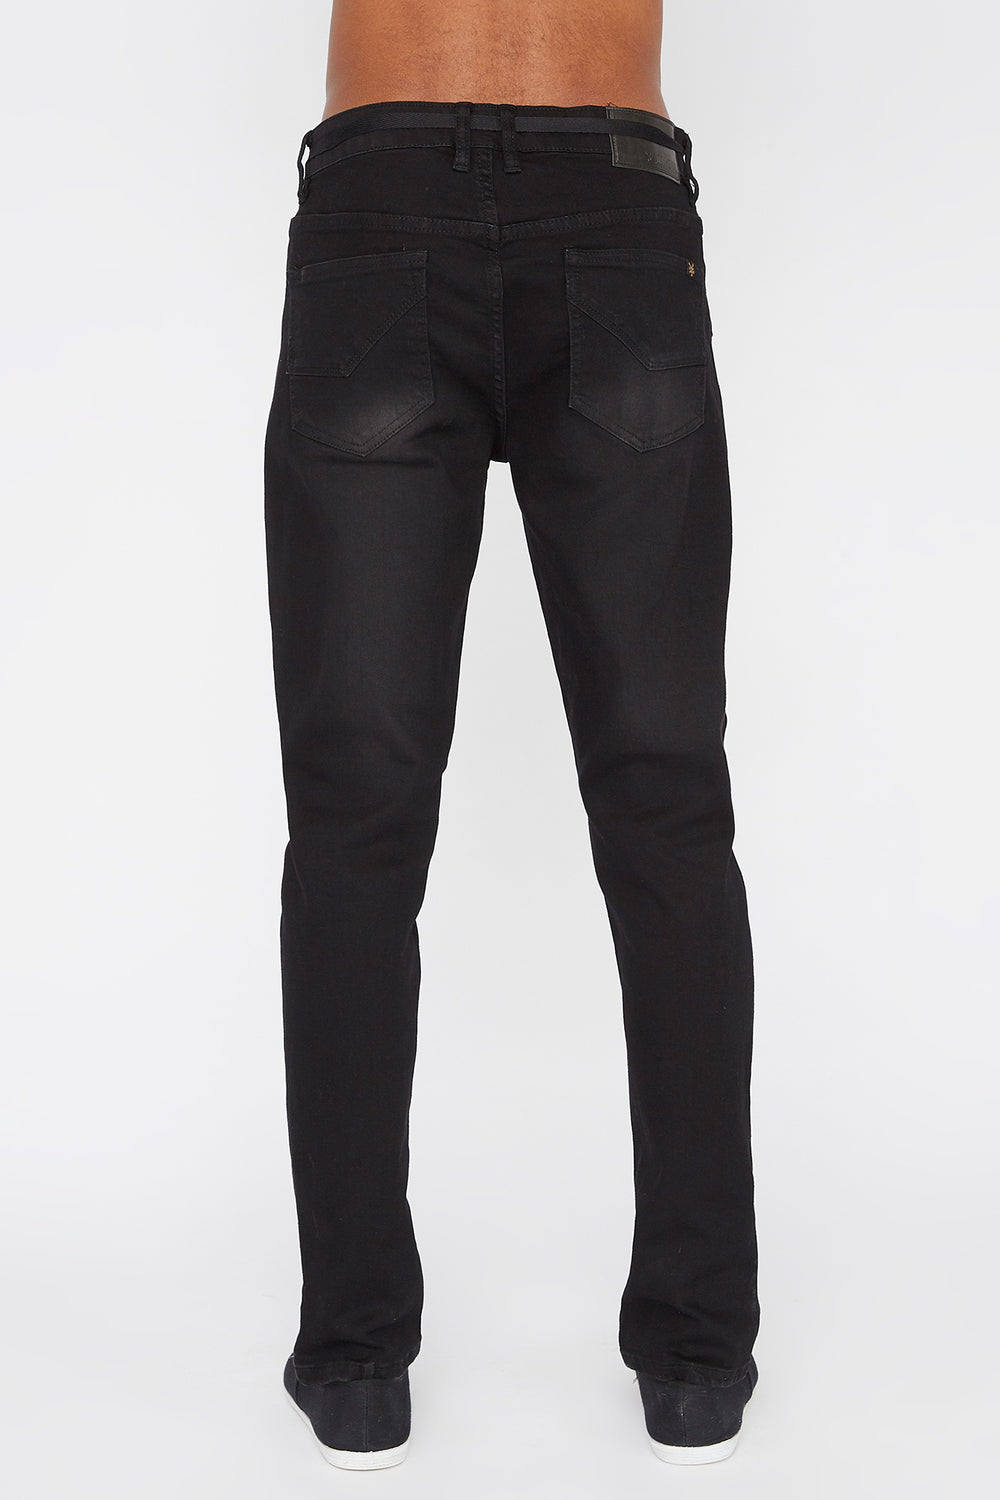 Zoo York Mens Distressed Black Stretch Skinny Jeans Solid Black